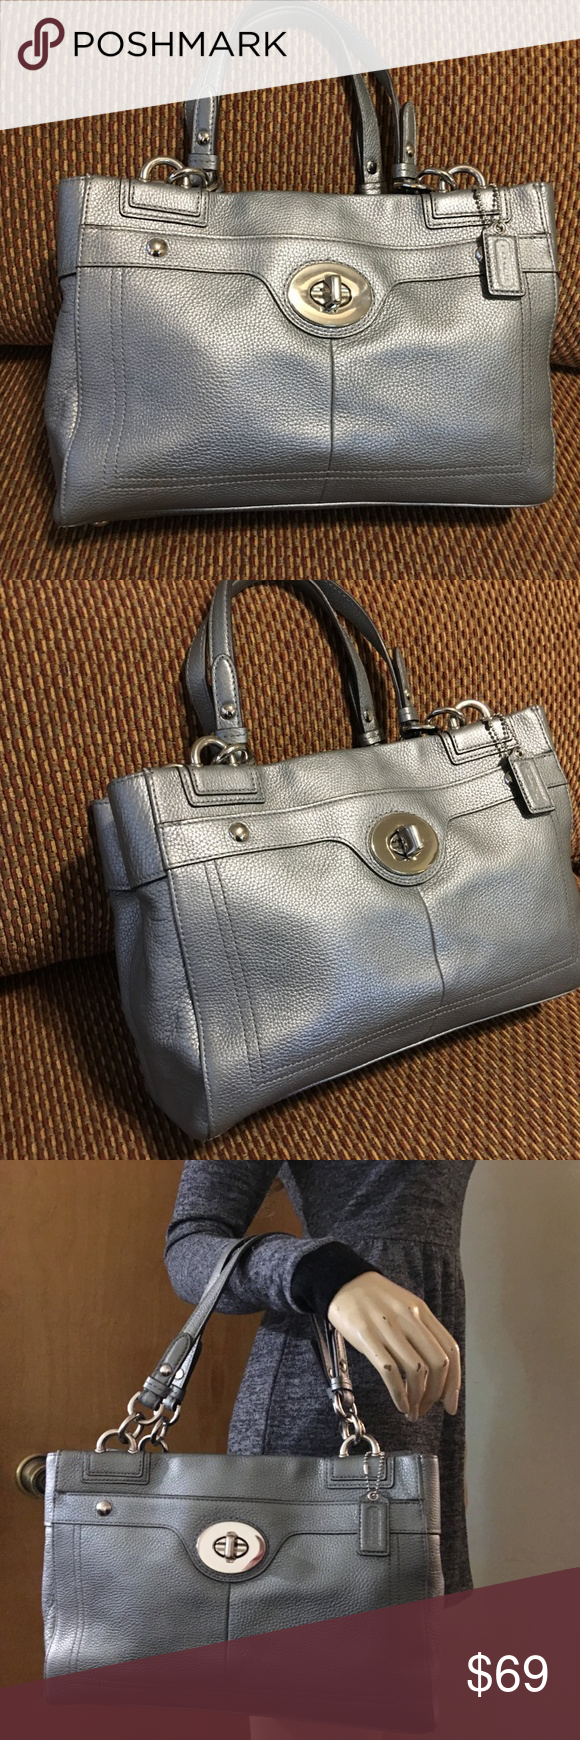 3bd80735b0 COACH Penelope Platinum Leather Carry All Stunning COACH Penelope satchel!  This carry-all is